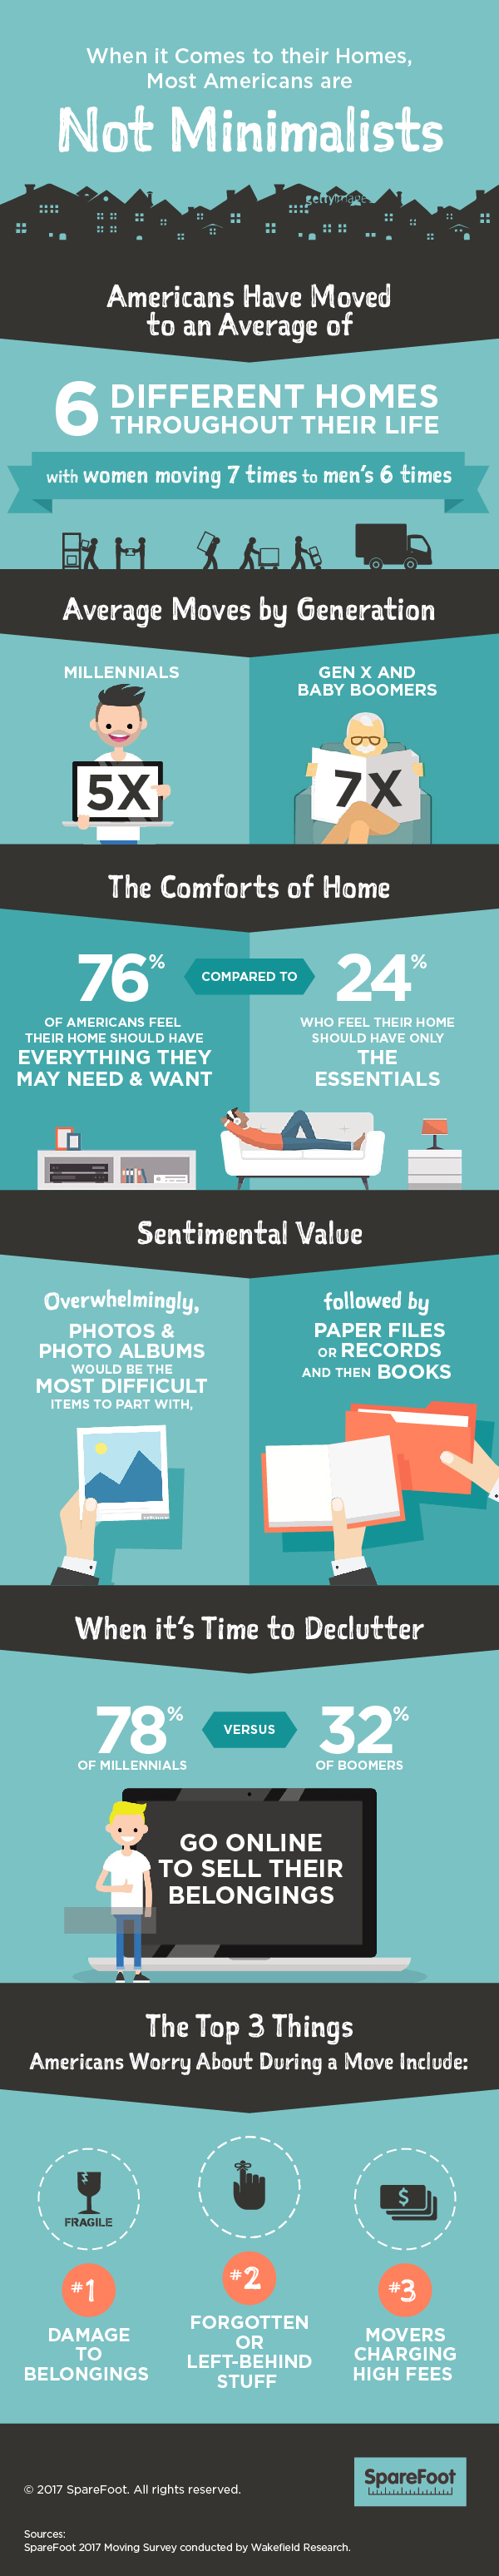 SPF014-Infographic-Spring Series-Americans Are Not Minimalists-0517-DRAFT 1_600px